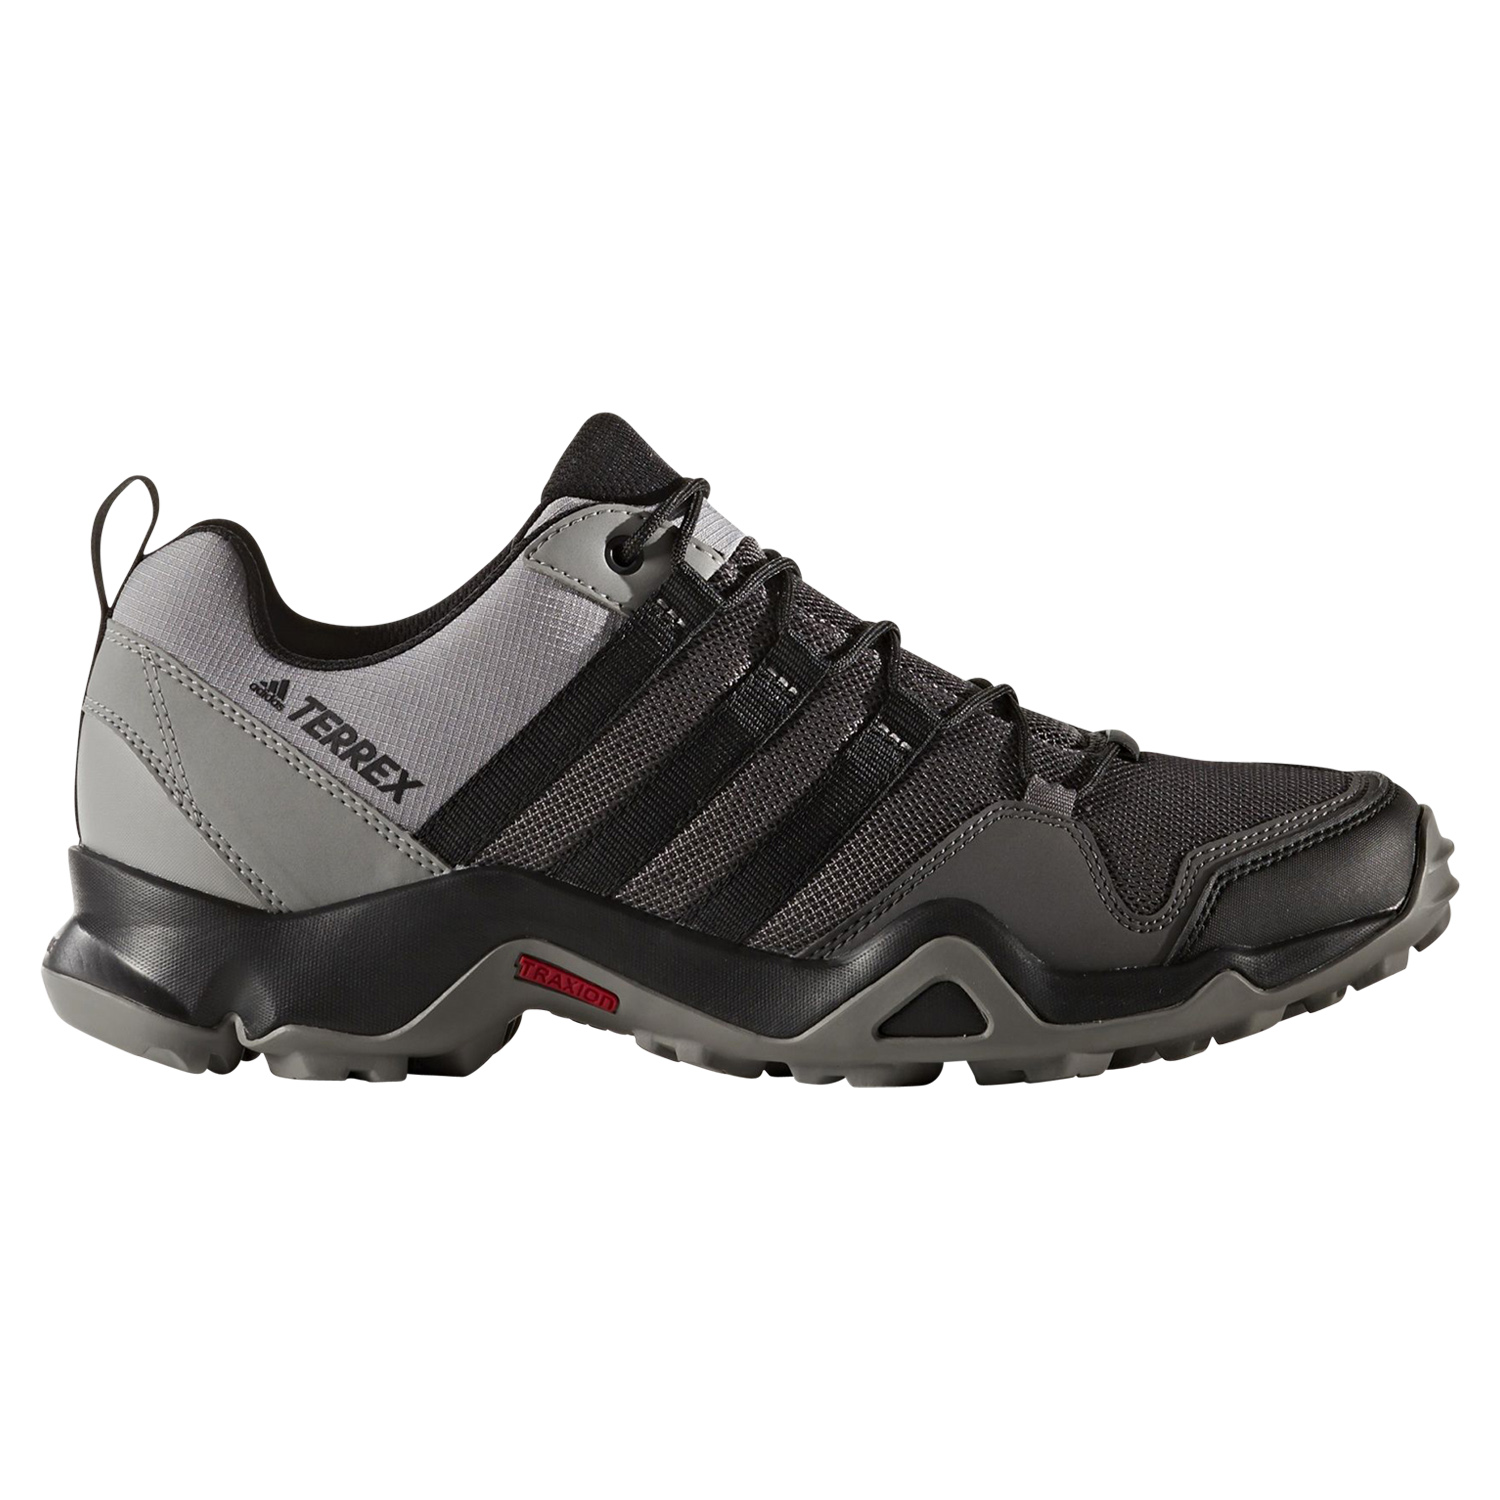 Adidas Trail Shoes South Africa